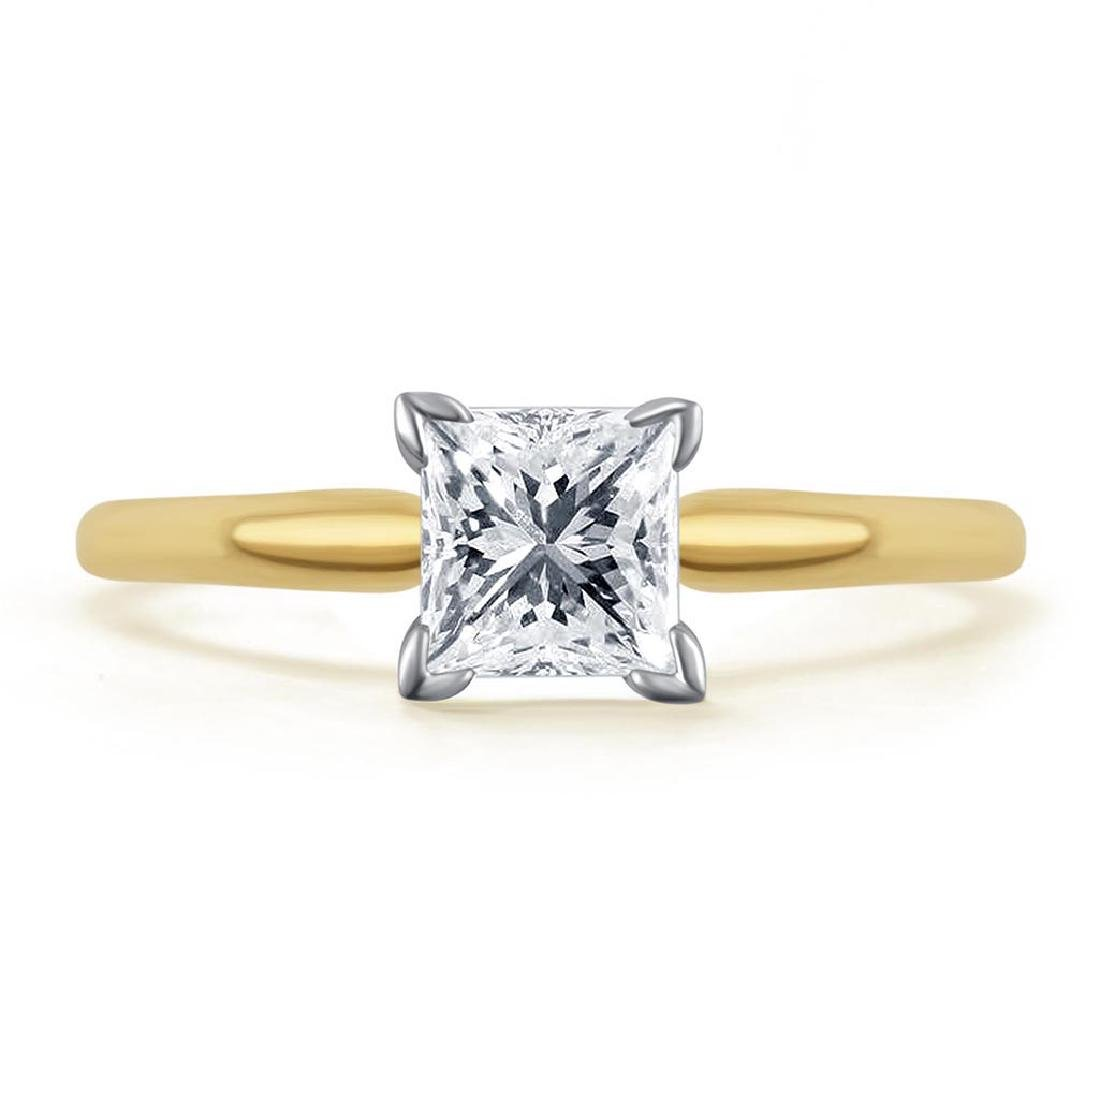 CERTIFIED 1.01 CTW PRINCESS I/SI1 SOLITAIRE RING IN 14K